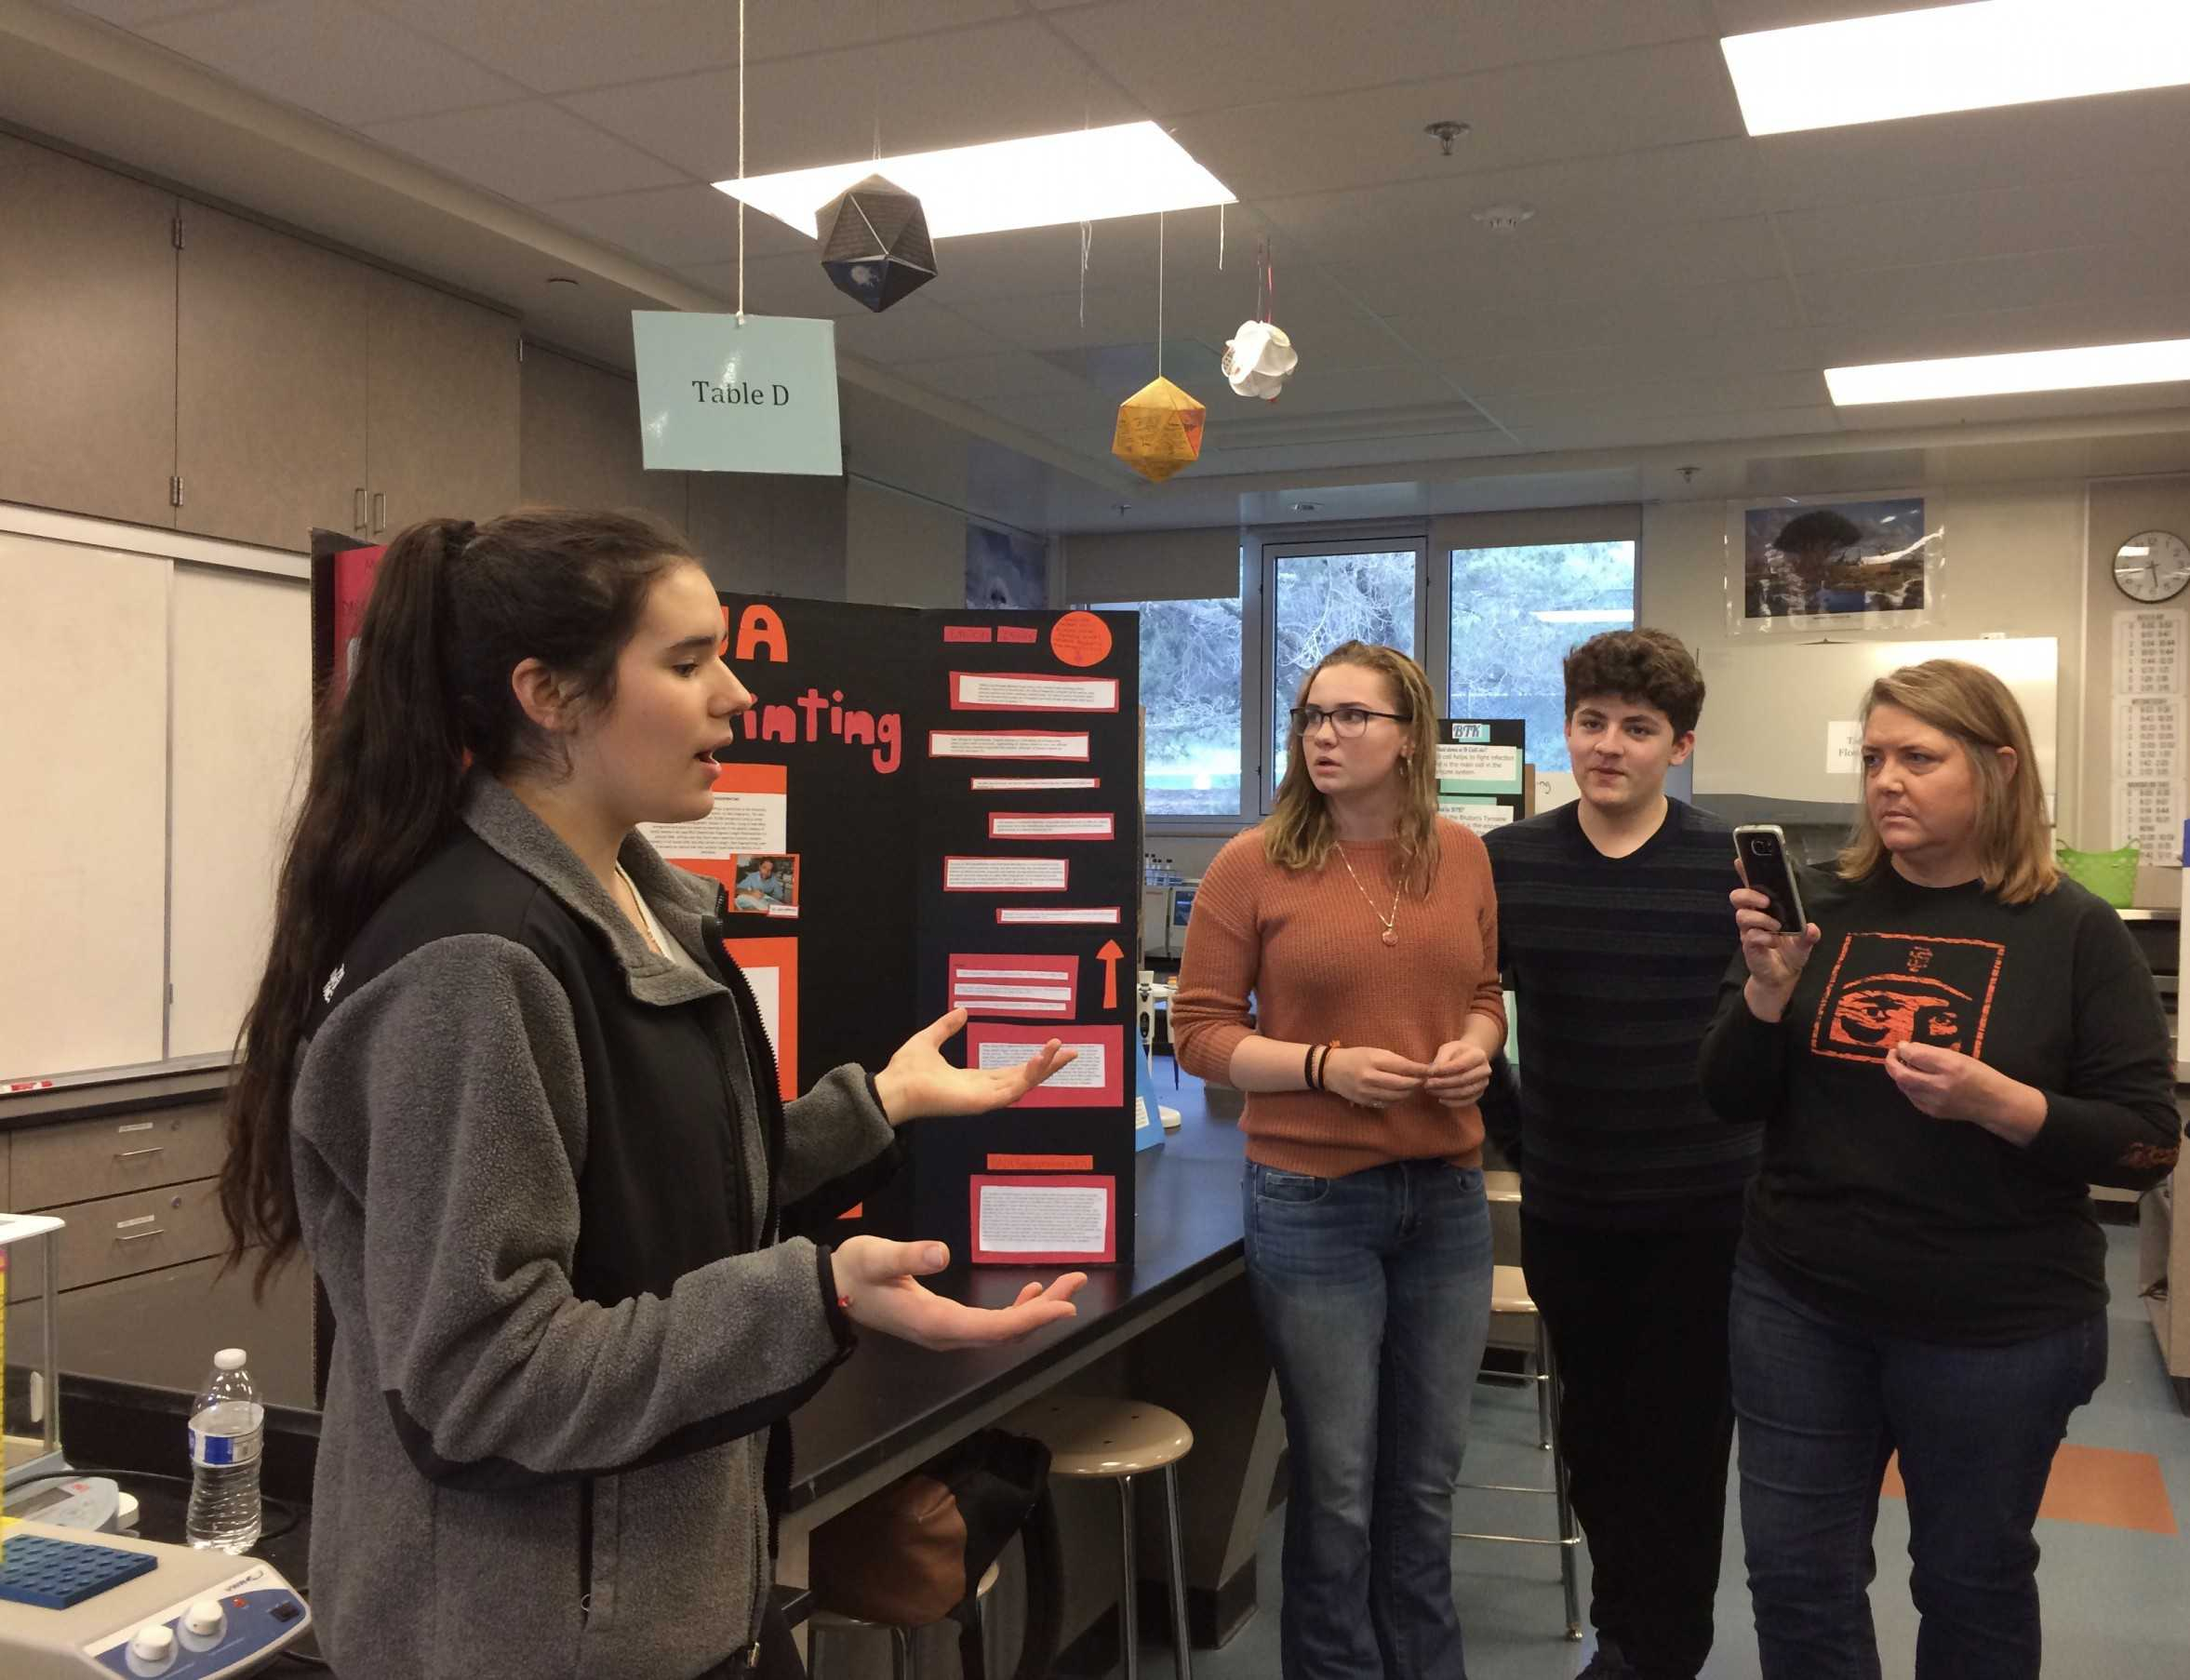 Sophomores Tiara Testa, Jessie Zorb, and Terby Diesh present their biotechnology project on DNA fingerprinting to a group of parents.